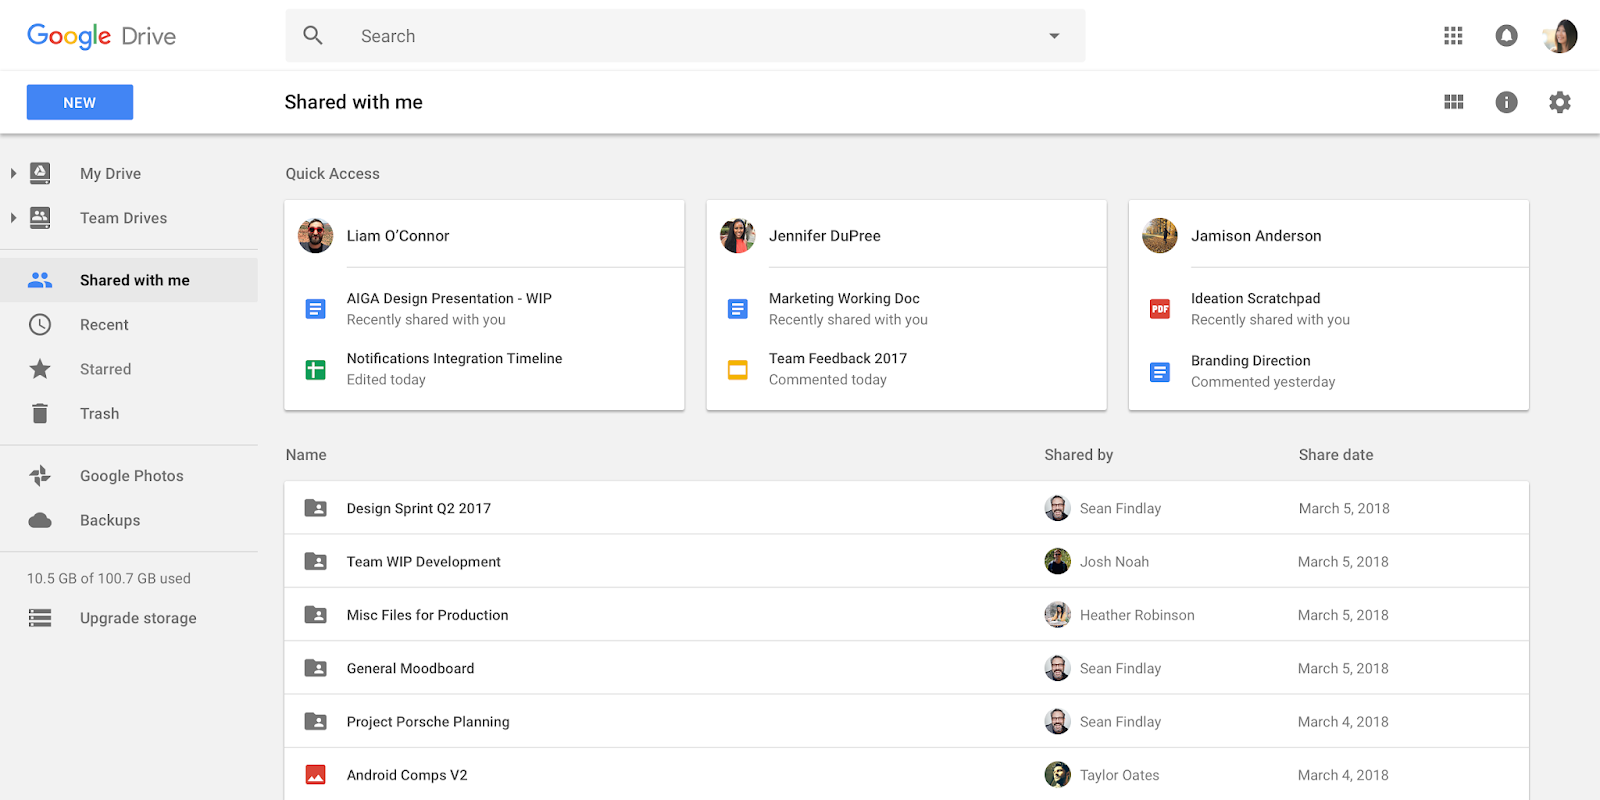 Google Drive's file system gets a revamp w/ AI smarts for